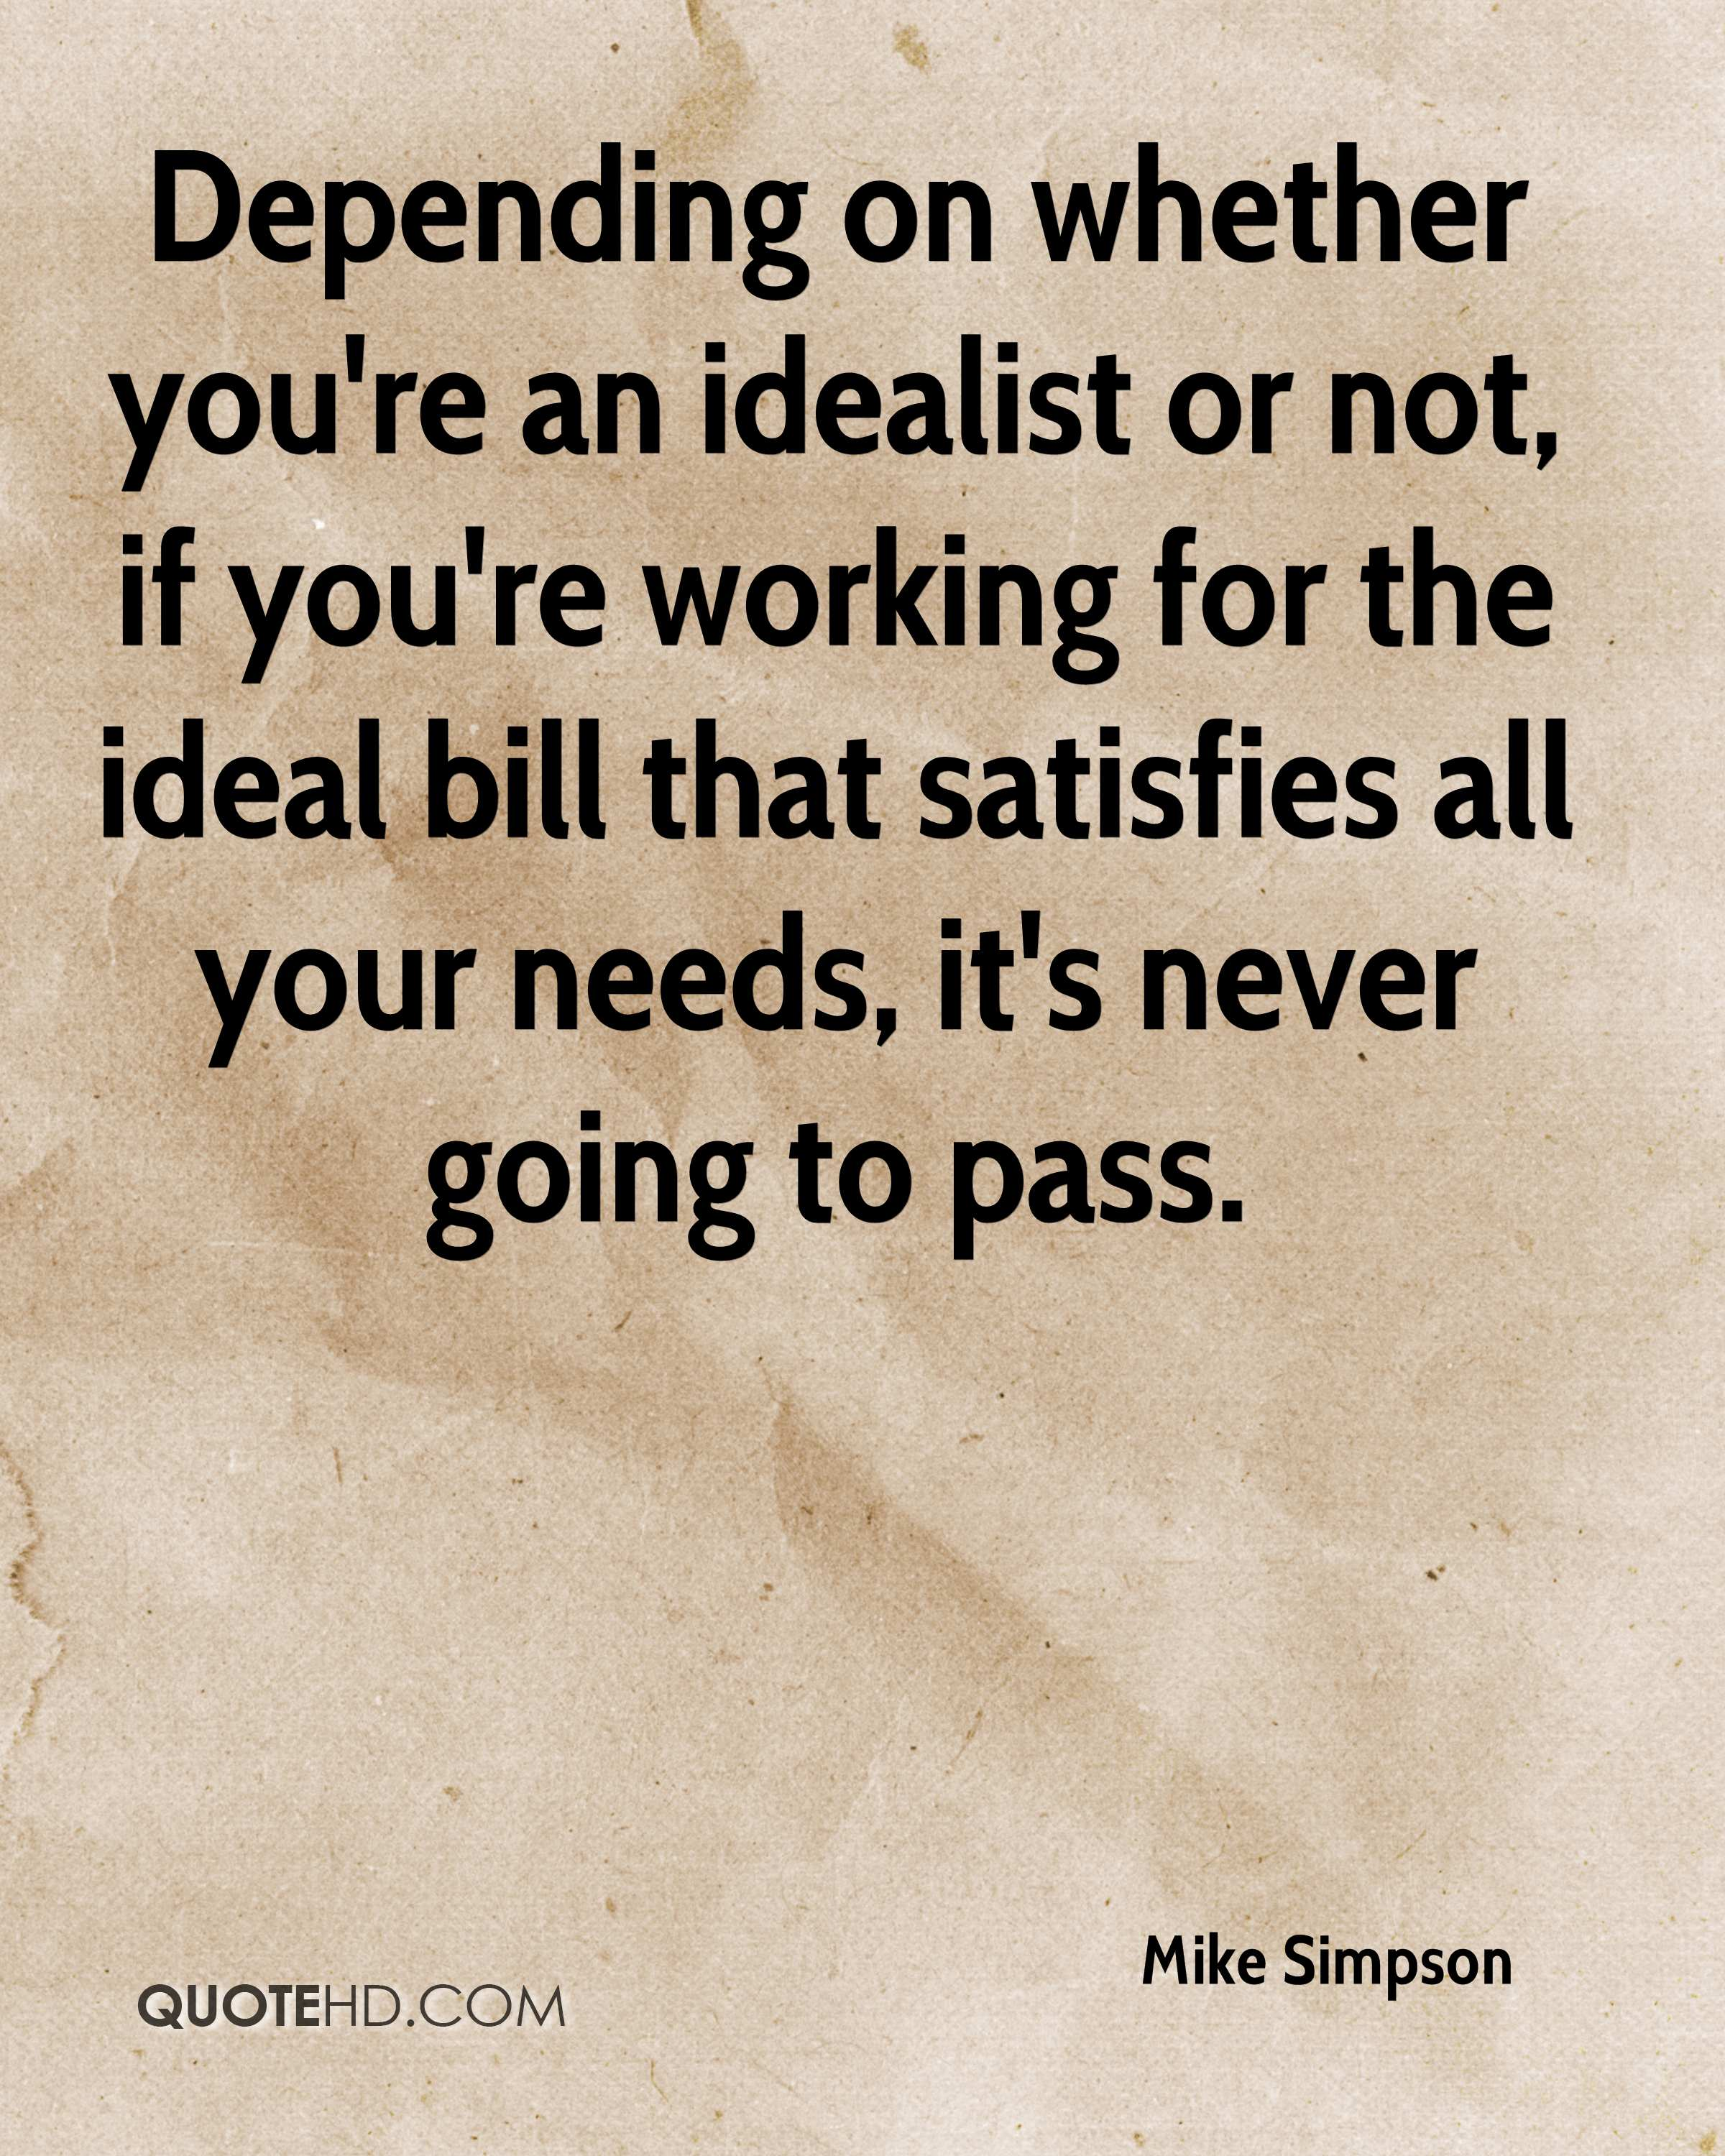 Depending on whether you're an idealist or not, if you're working for the ideal bill that satisfies all your needs, it's never going to pass.